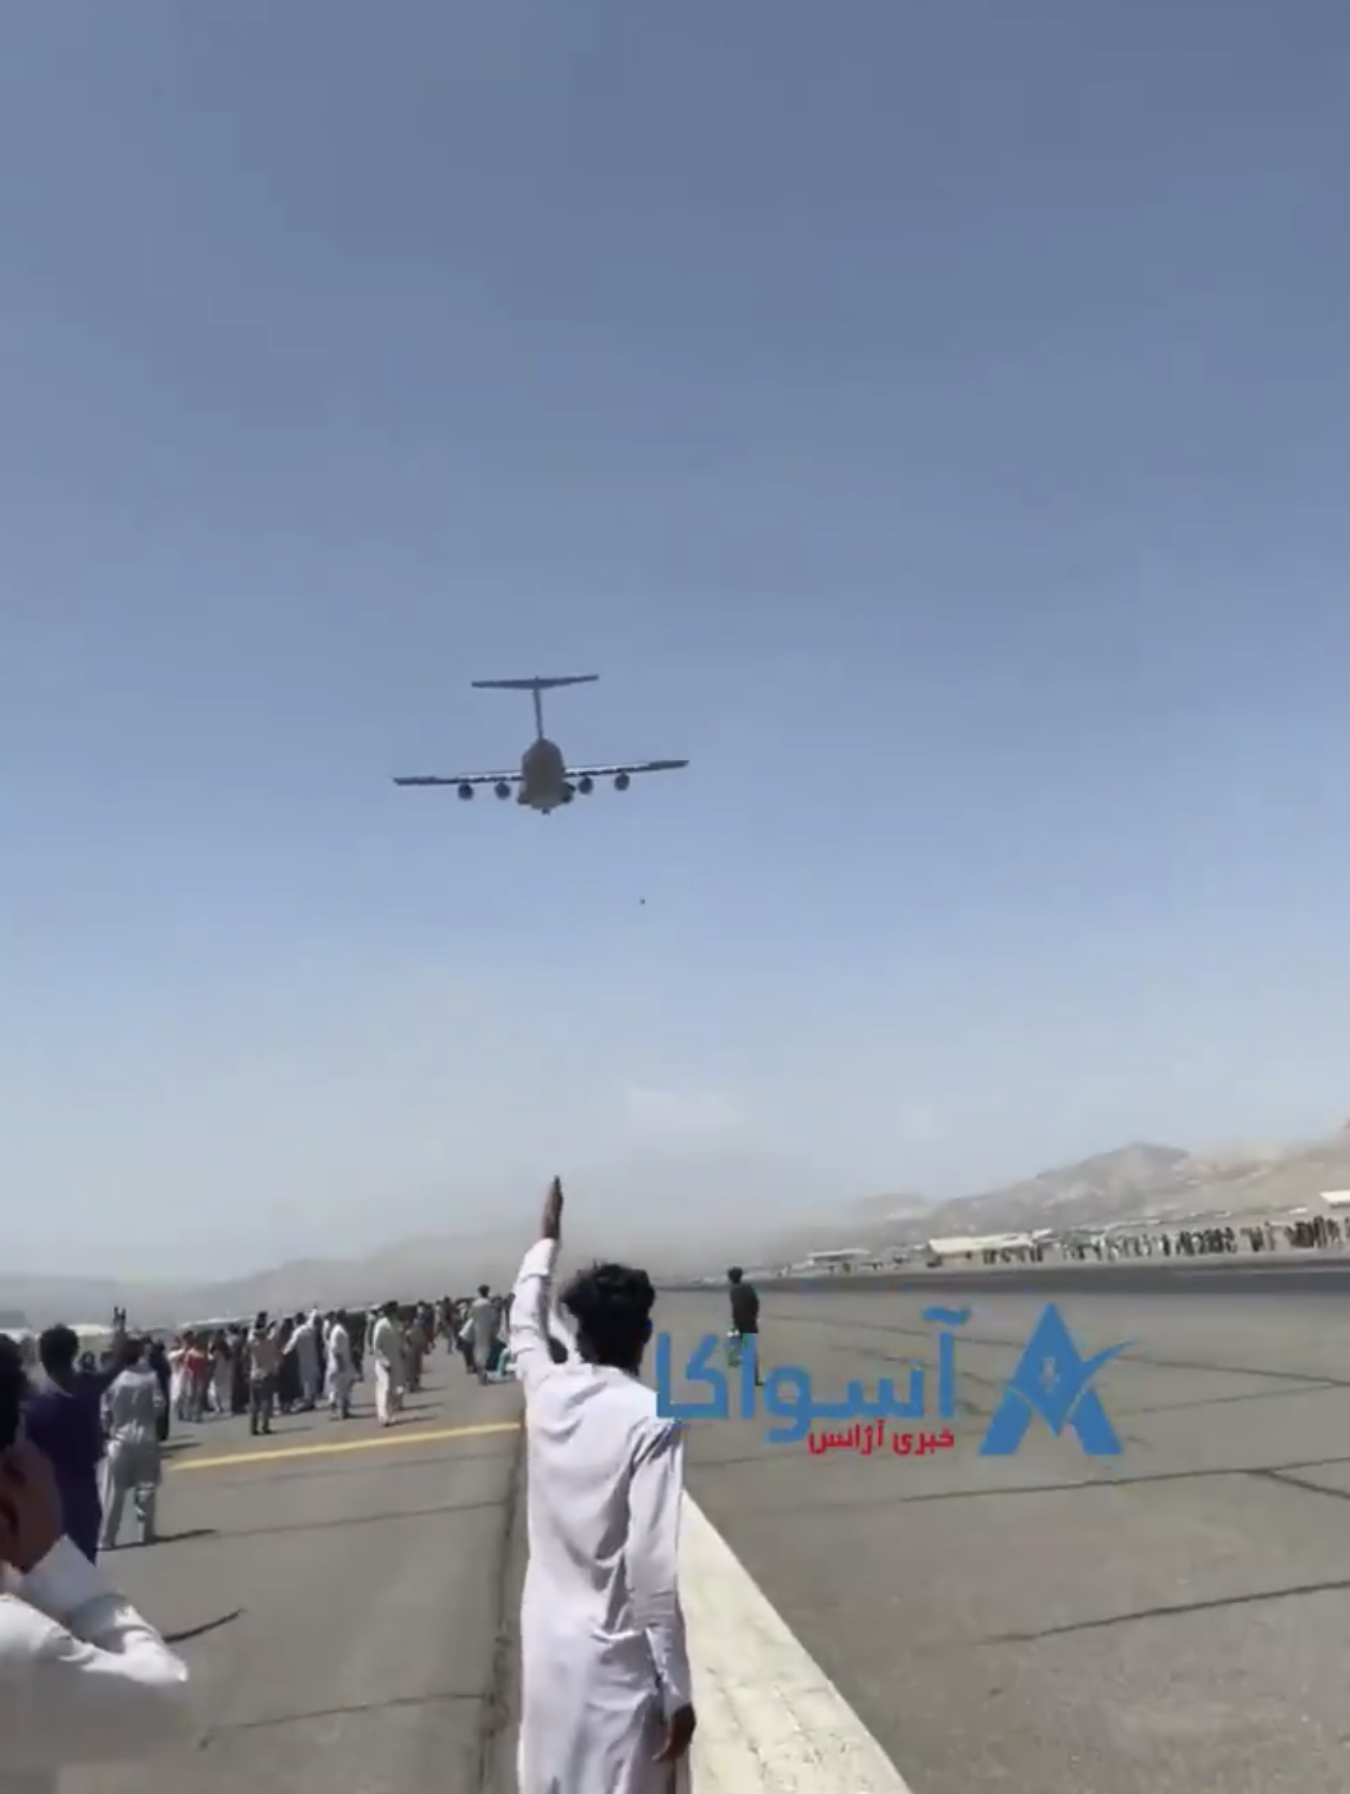 Person falls to their death from airborne C-17 plane, which they had clung to as it departed from the Kabul, Afghanistan, airport